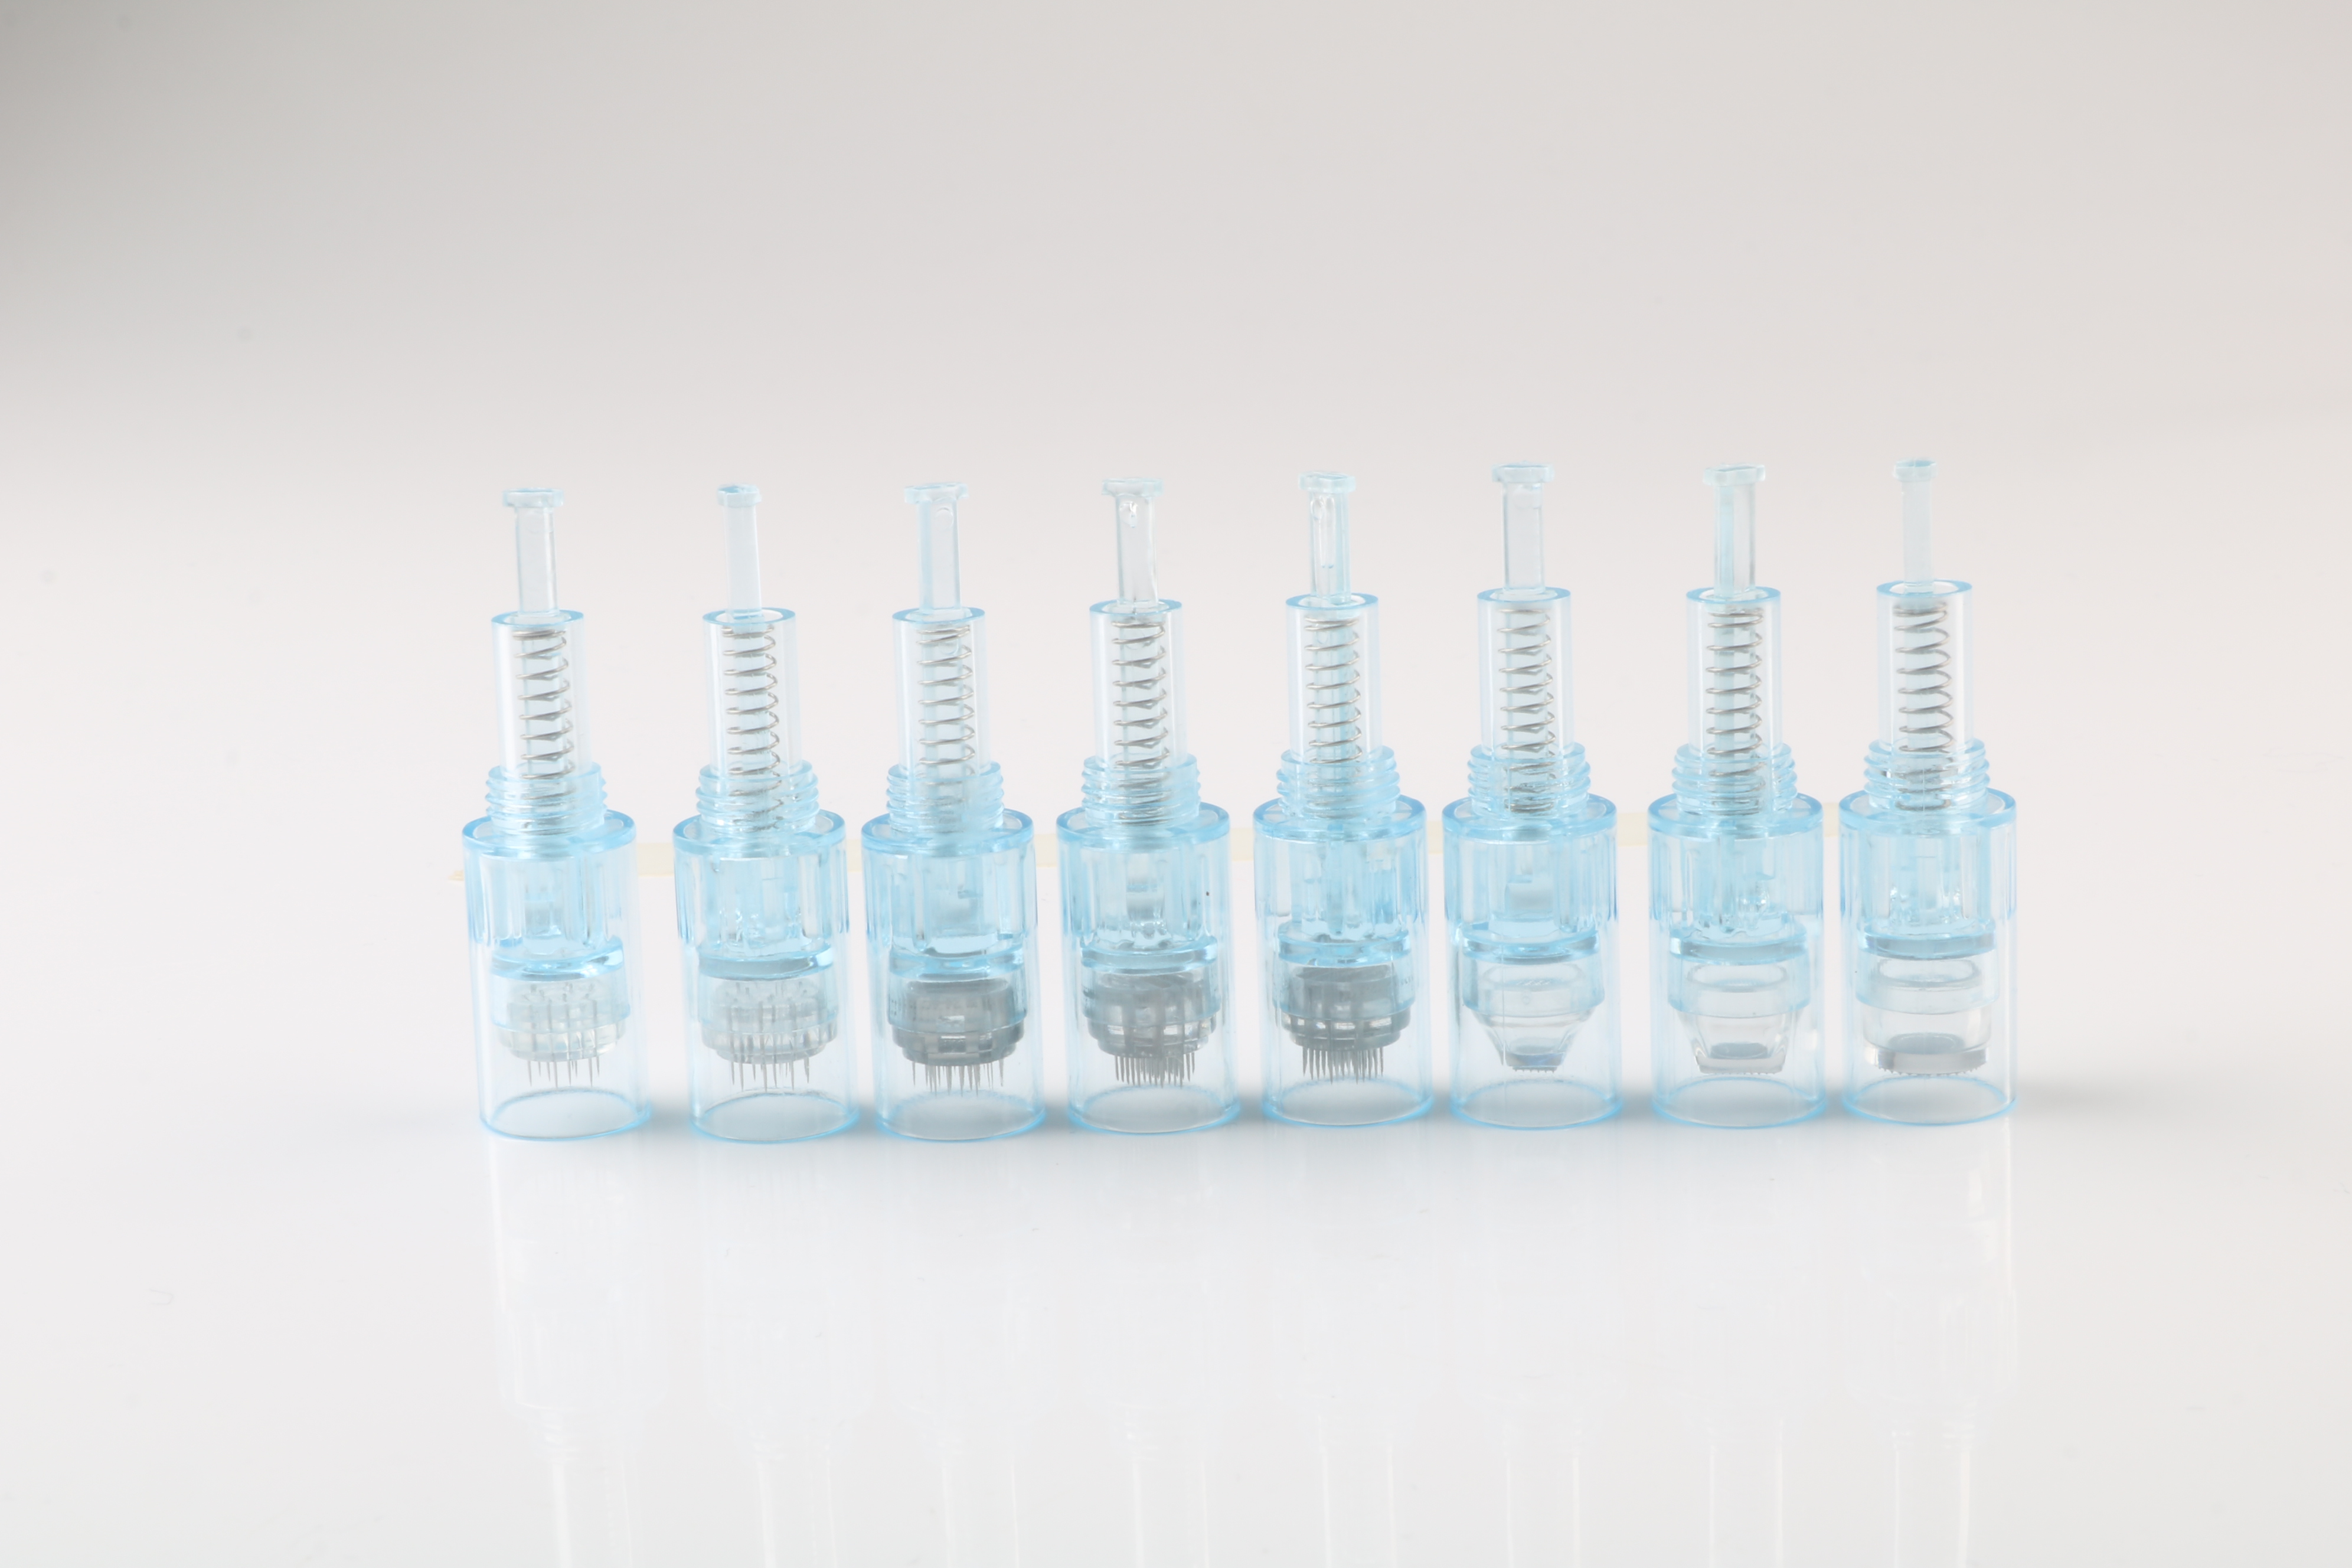 10 PCS 9/12/24/36/42/Nano Microneedling Needles Of Dr. Pen X5 Model Replacement Cartridages